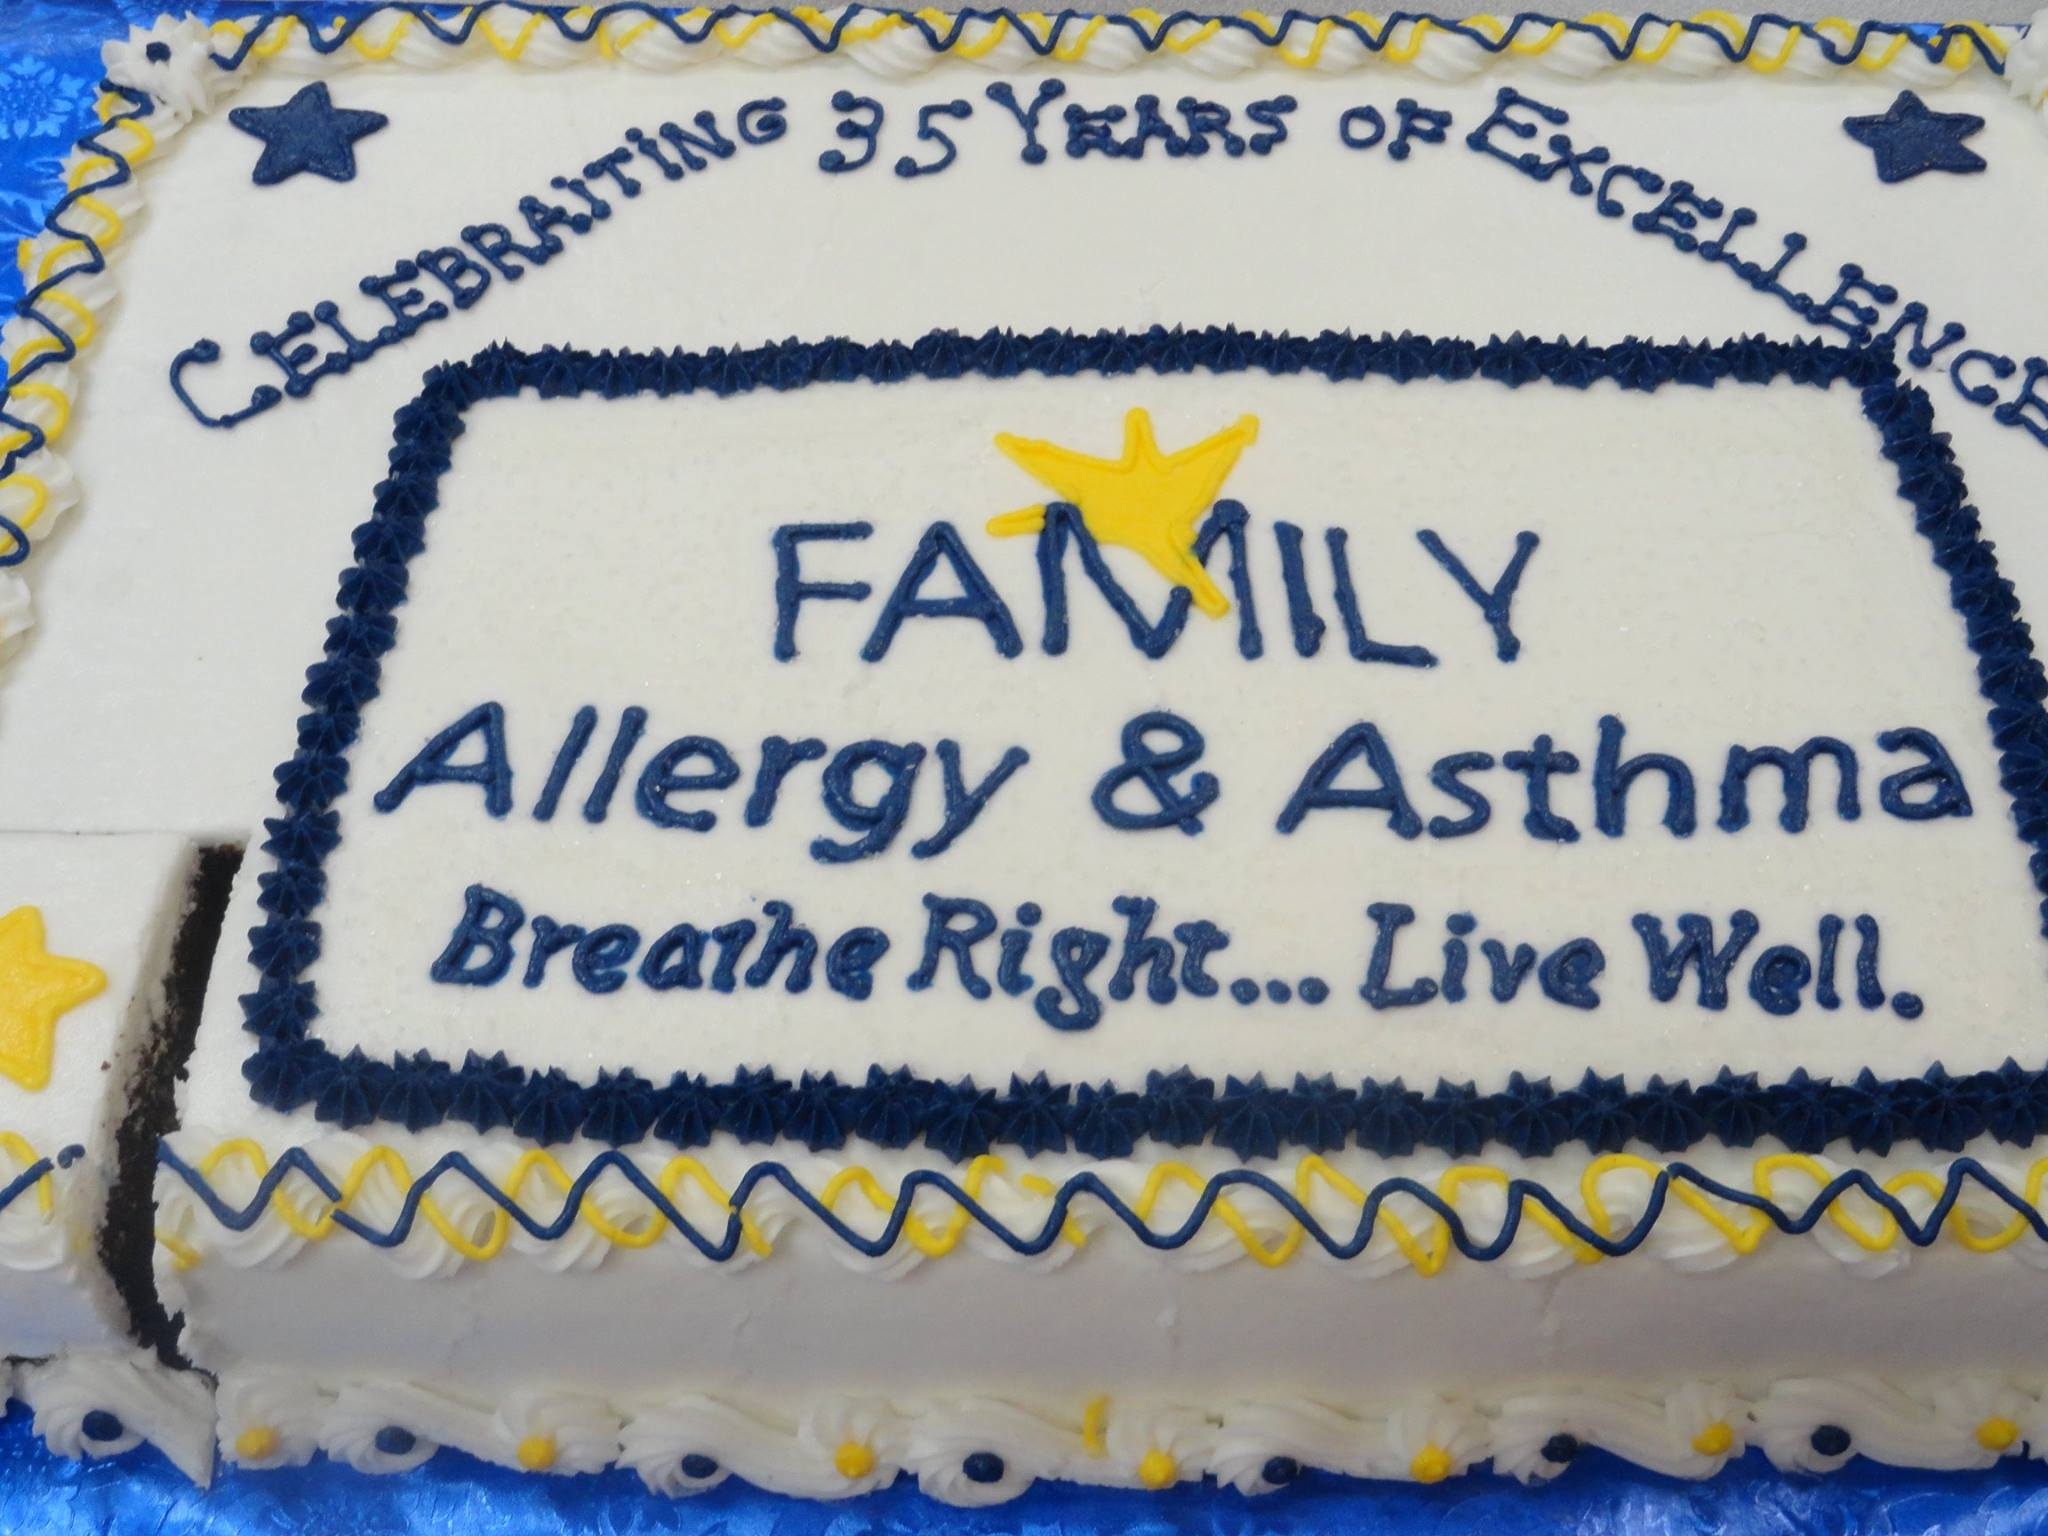 Celebrating 35 years of Excellence at Family Allergy & Asthma